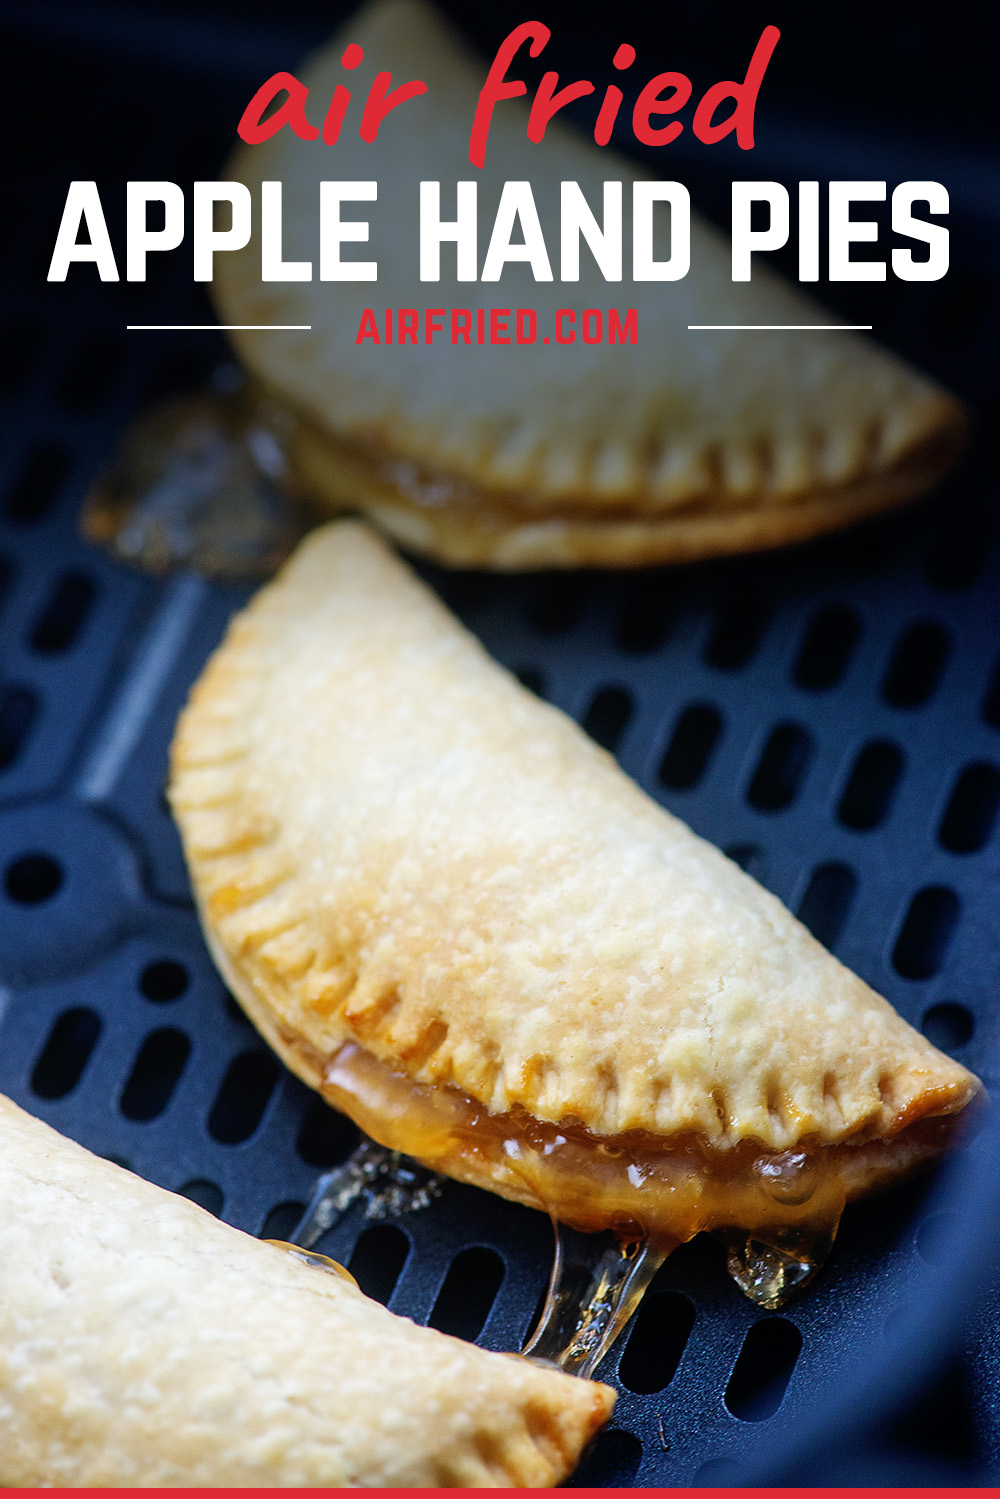 Fried apple pies are super easyy to make in the air fryer! #recipes #airfryer #applepie